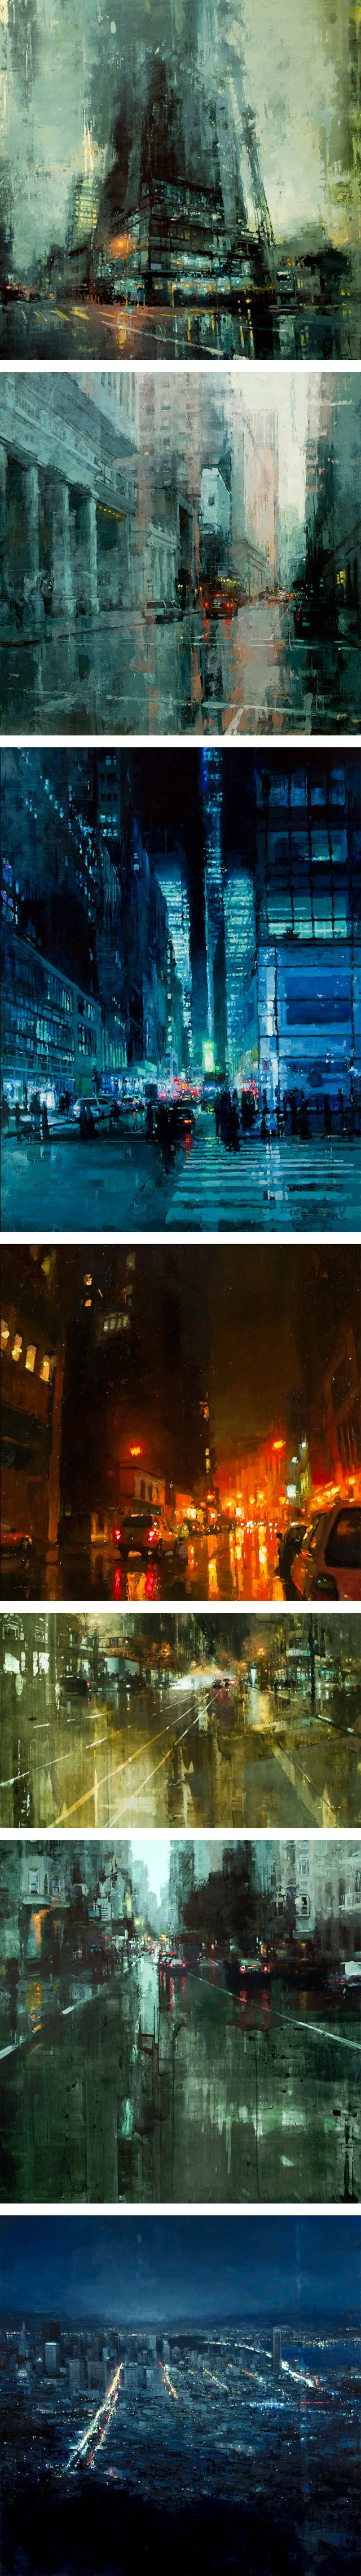 Cityscapes Painted with Oils by Jeremy Mann Lv  Jeremy's artwork..JR Amazing